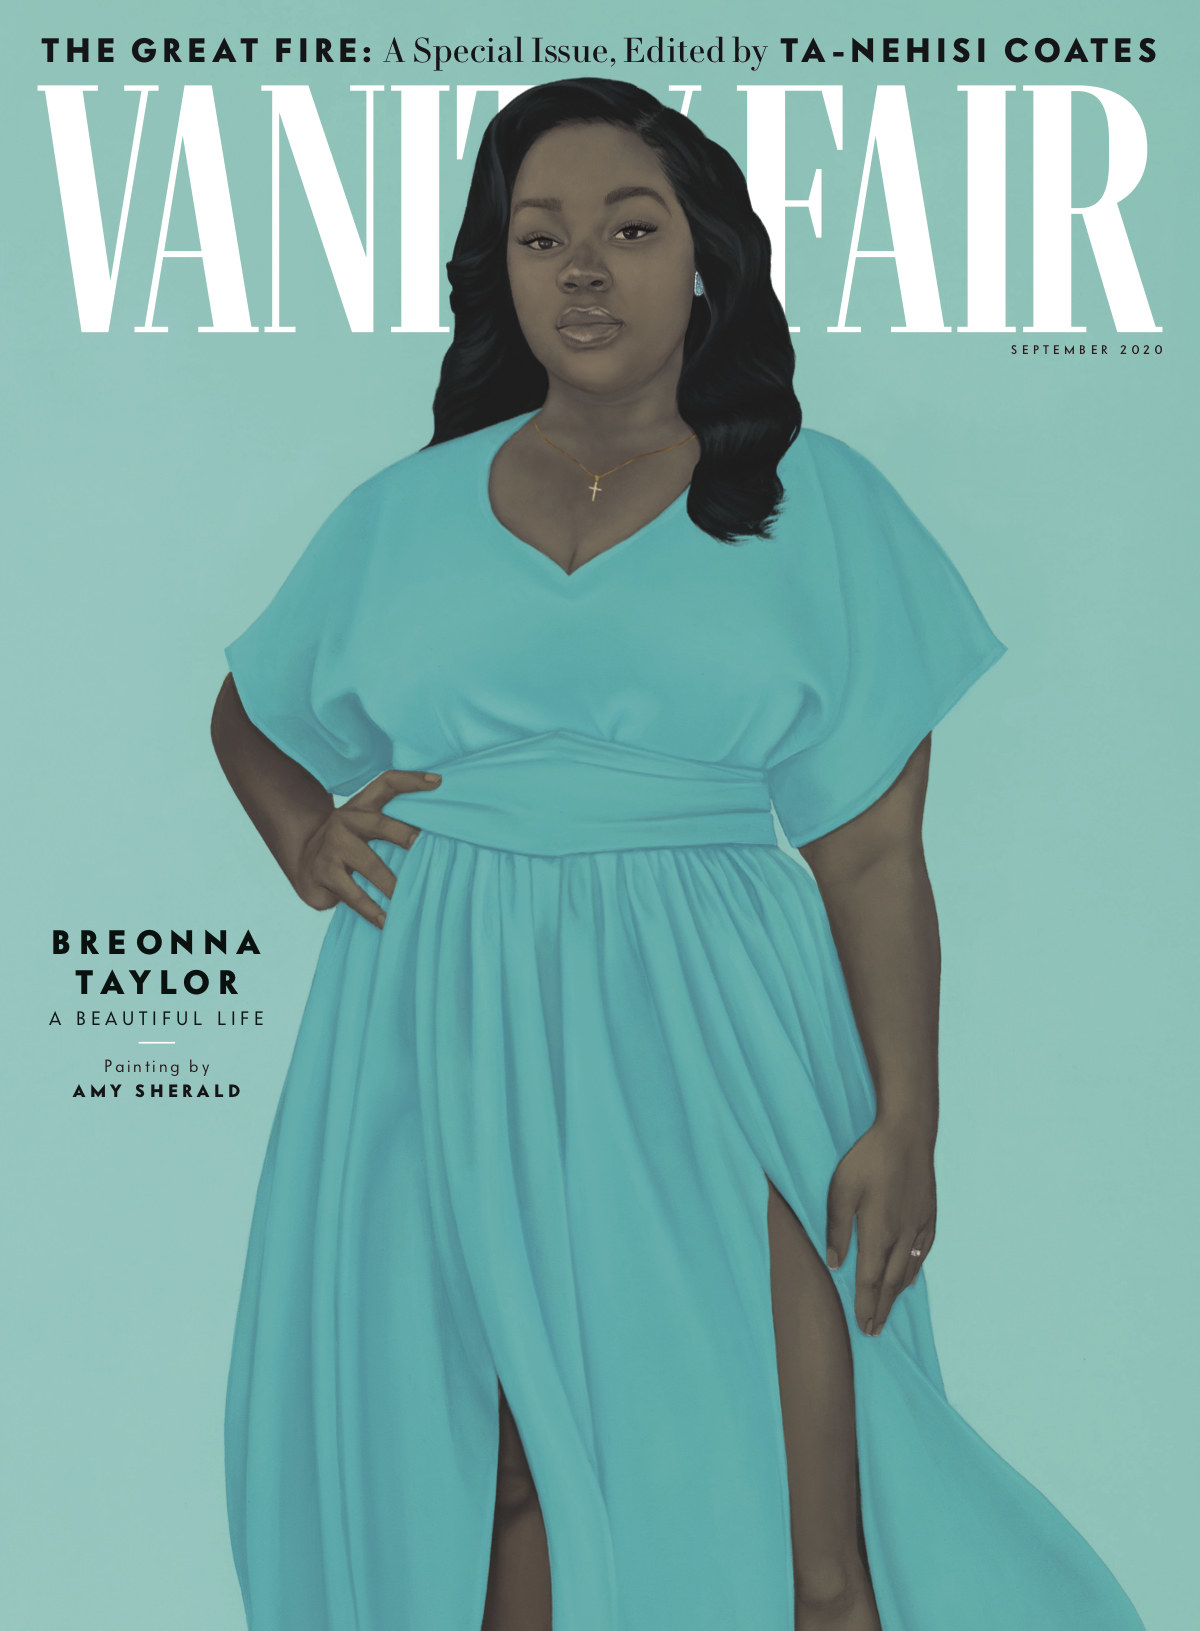 Cover of Vanity Fair's September 2020 issue, featuring a painting of Breonna Taylor